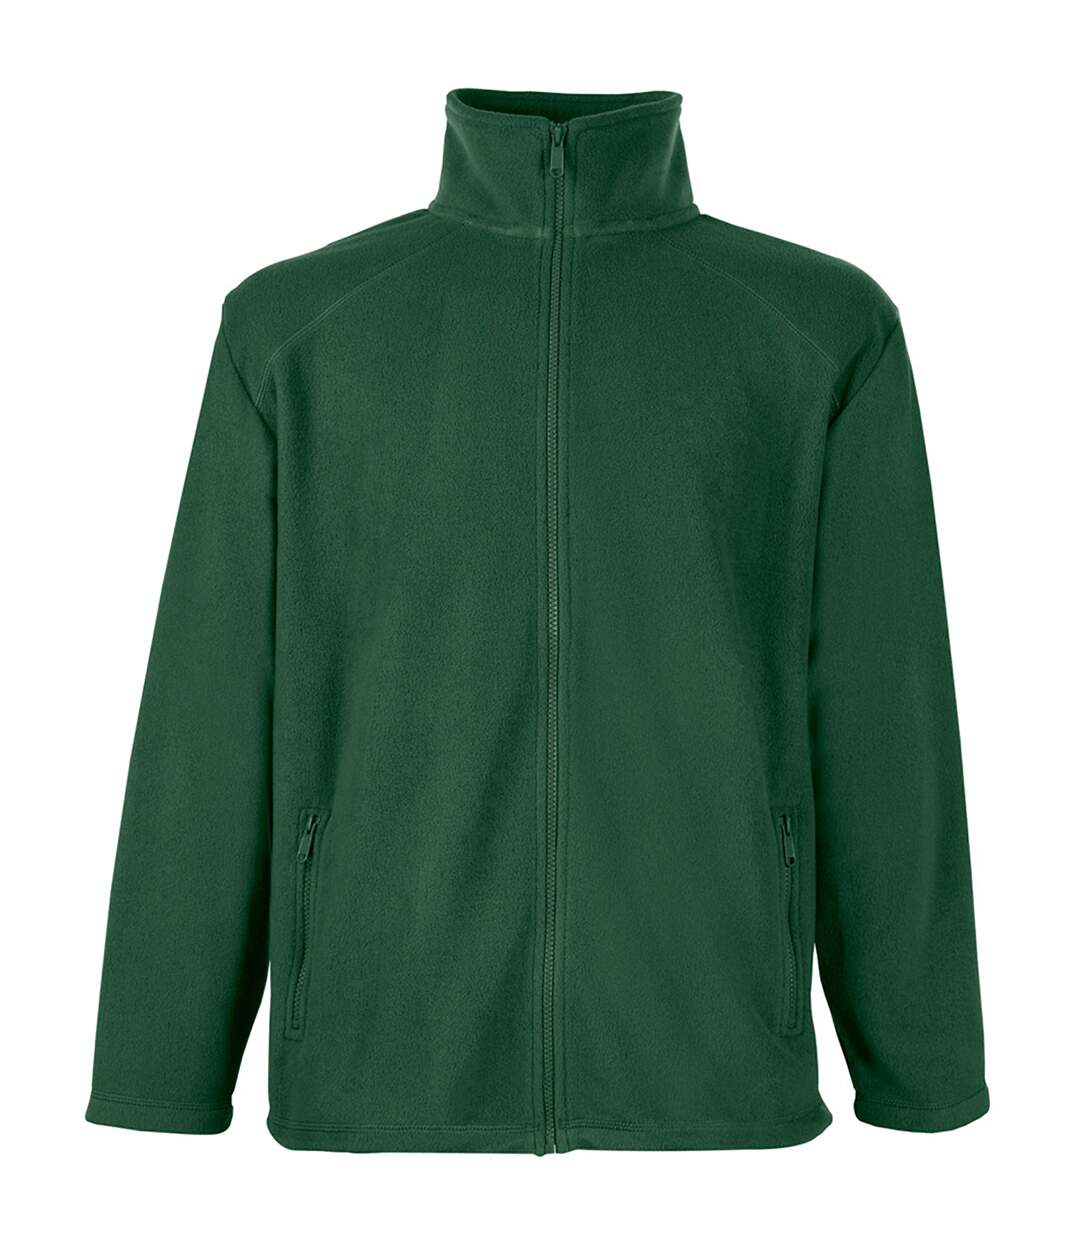 Fruit Of The Loom Mens Full Zip Outdoor Fleece / Top (Bottle Green) - UTBC372